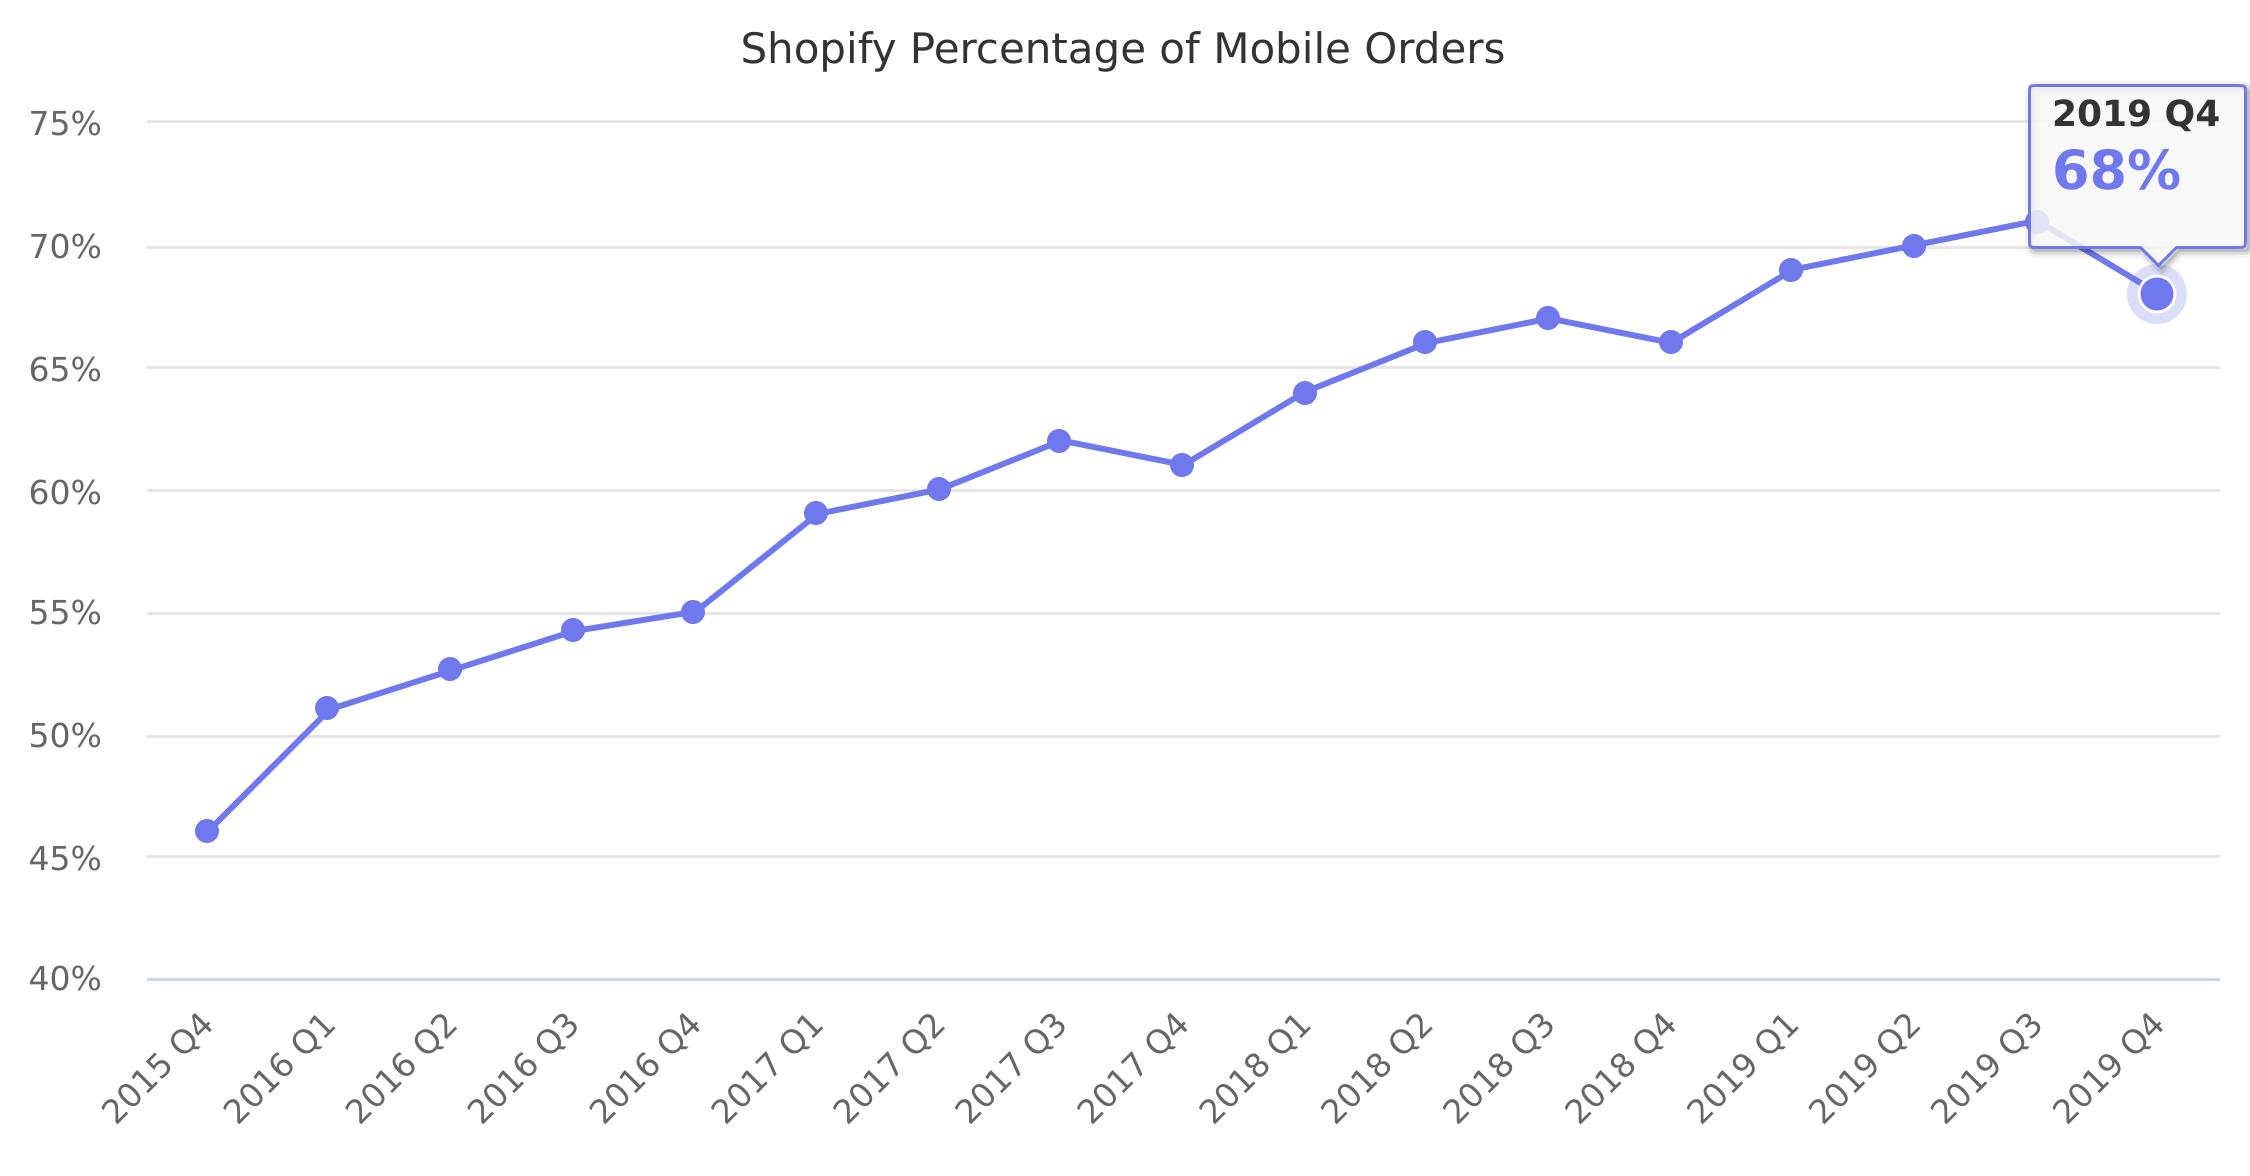 Shopify Percentage of Mobile Orders